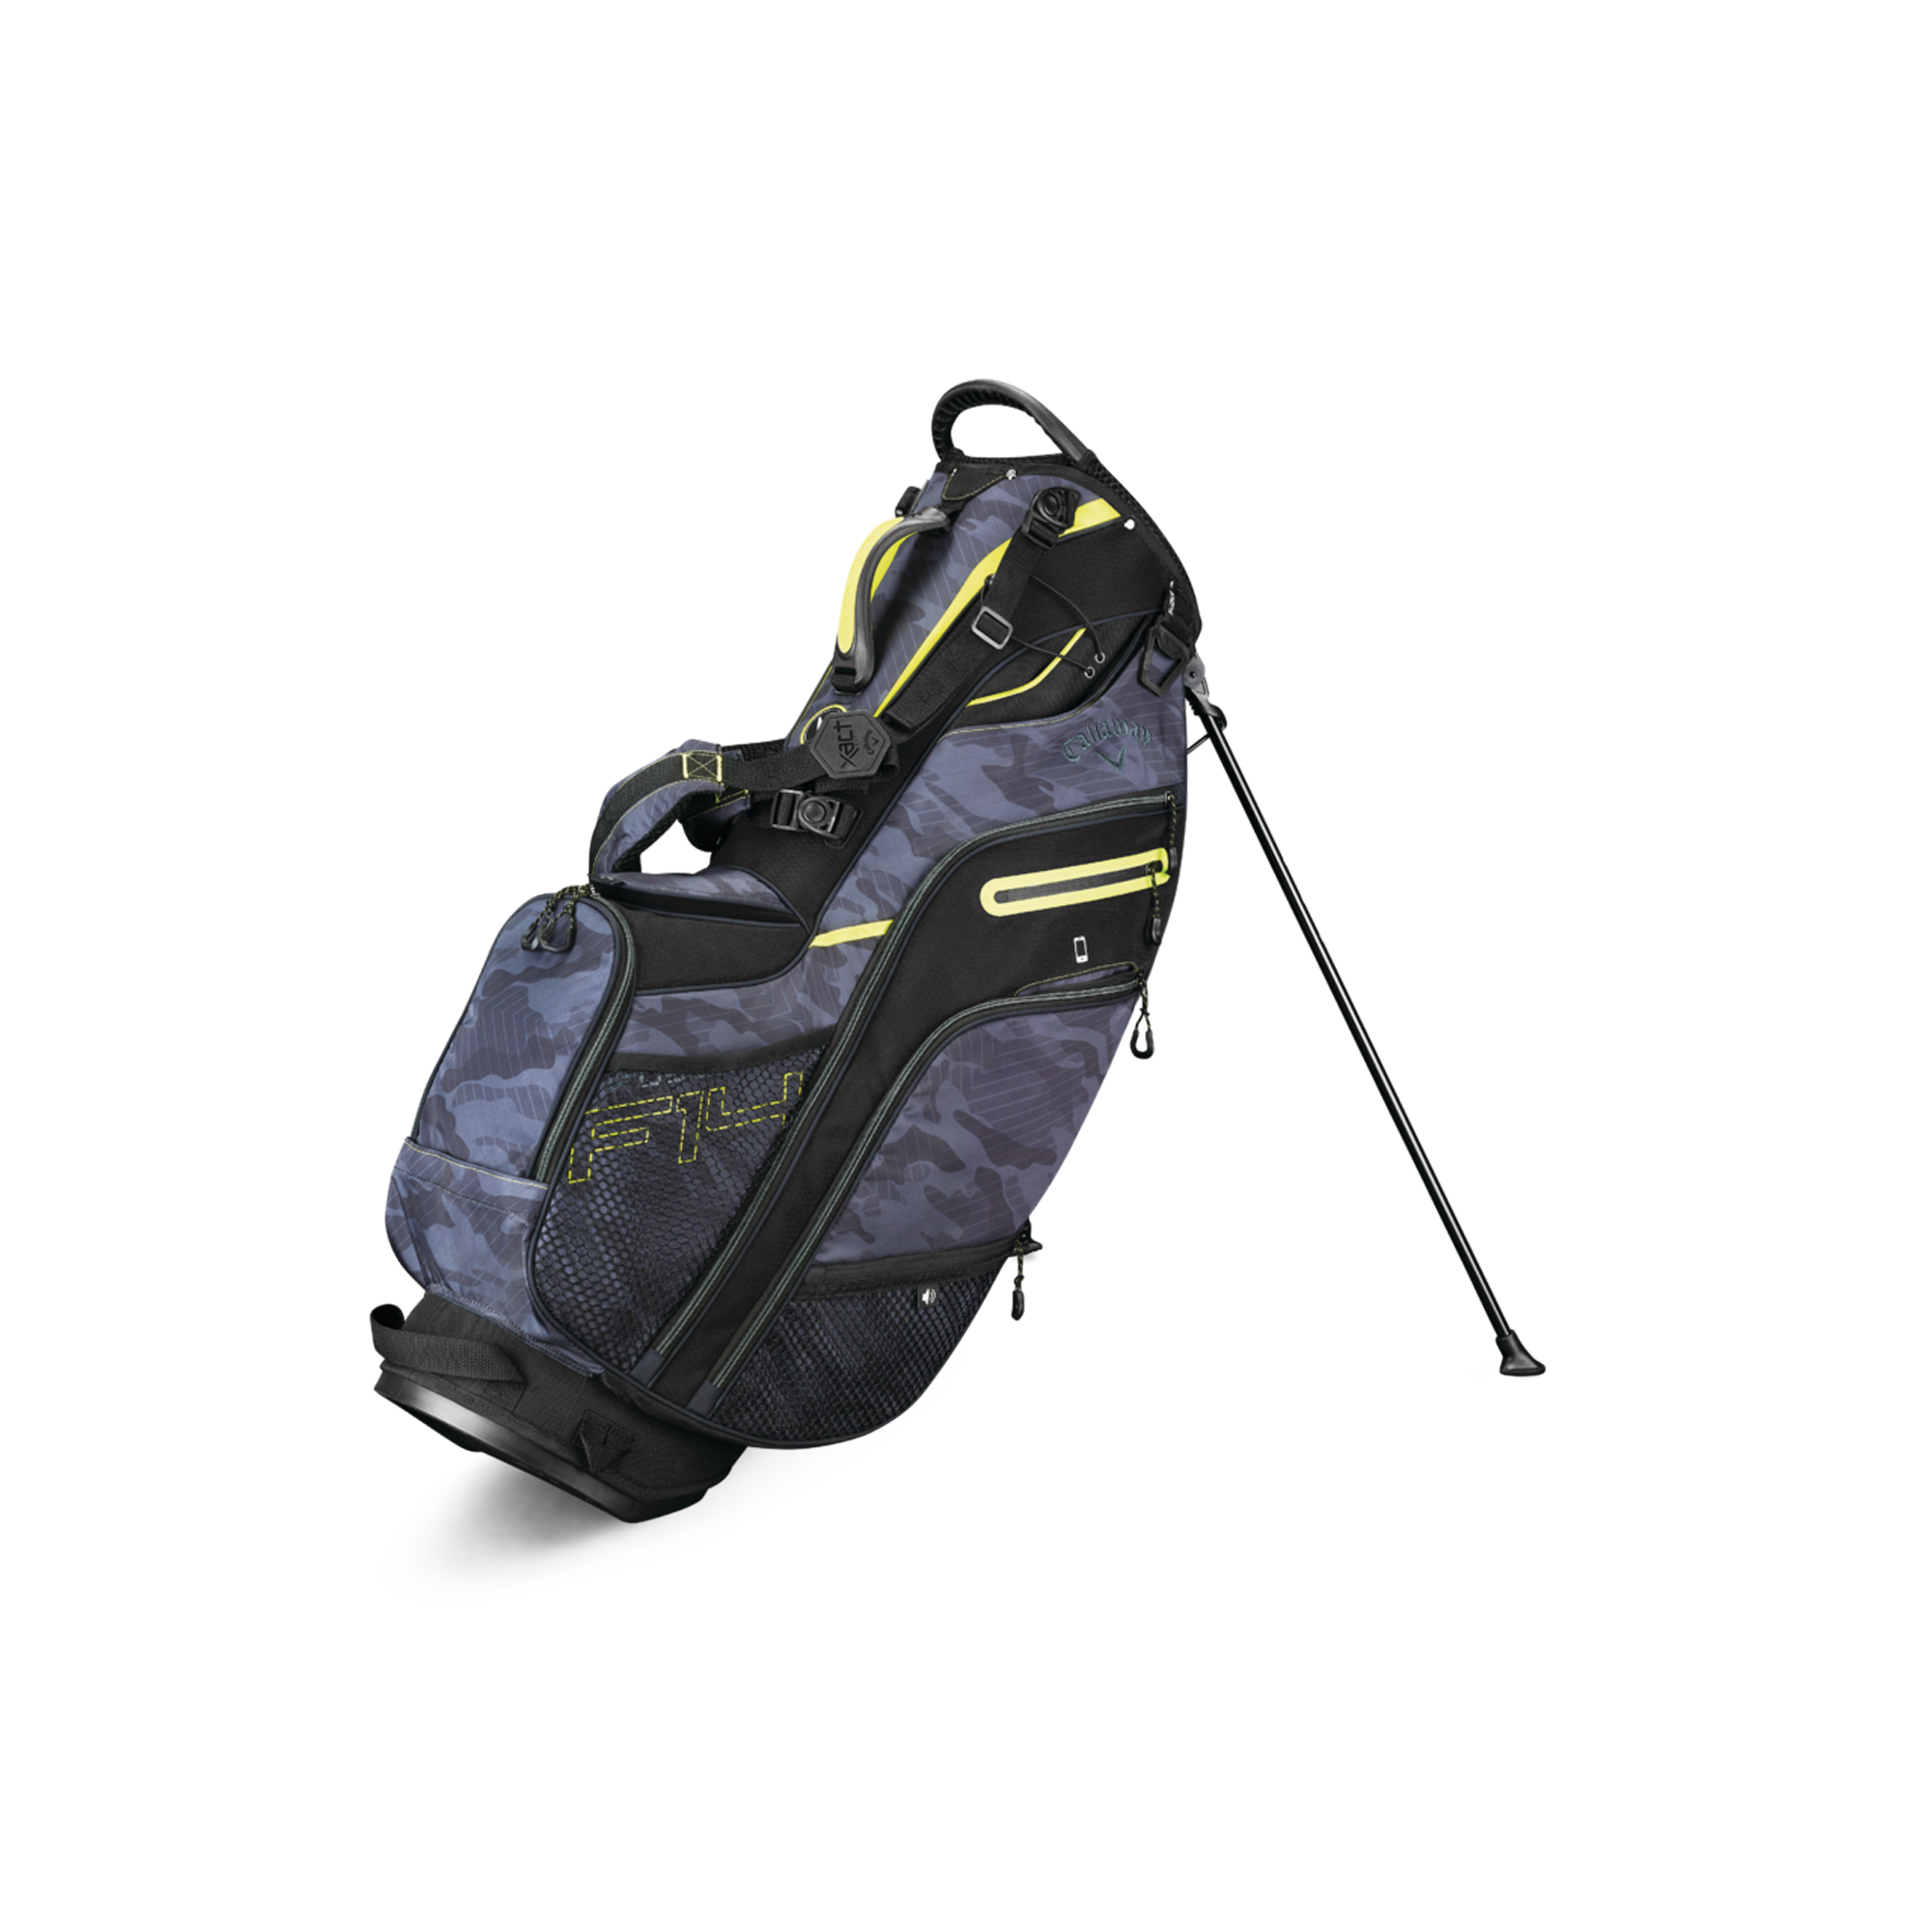 Callaway Fusion 14 Golf Stand Bag Blk Camo/Neon Yellow